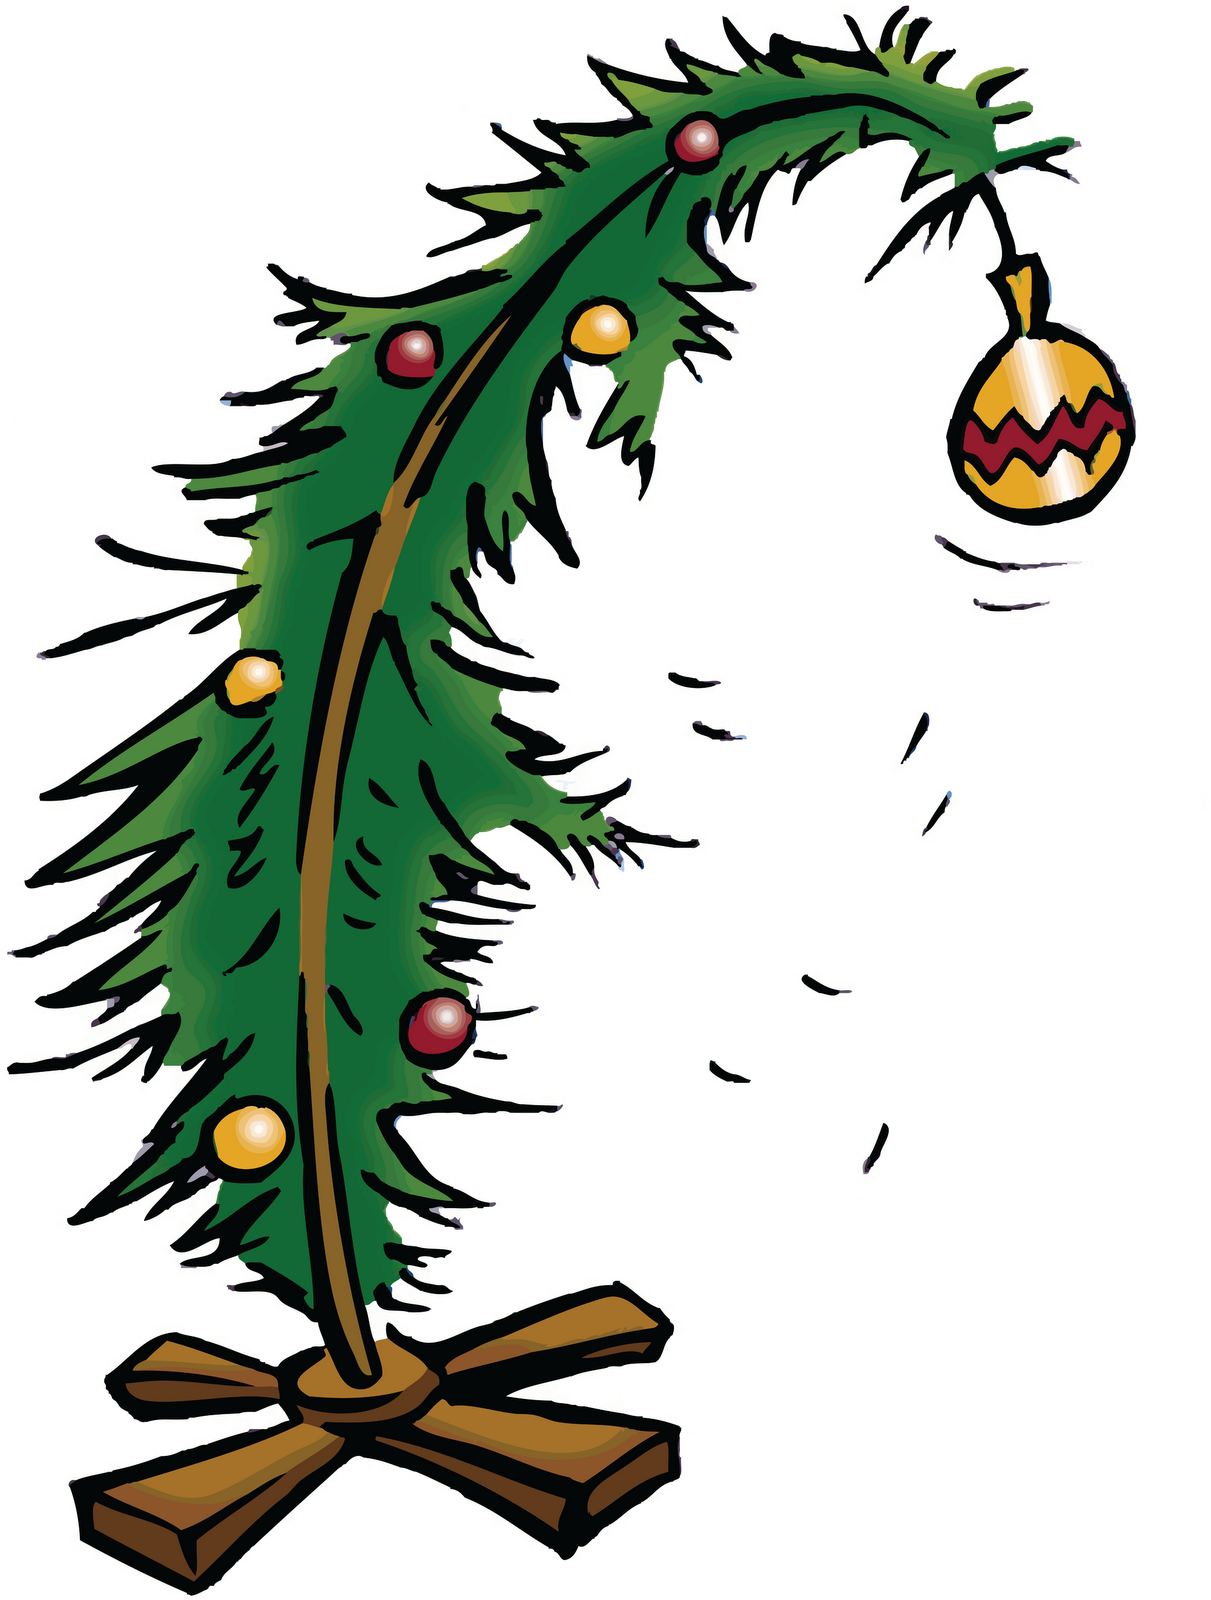 Sad tree clipart clip free library 12 Days Of Christmas Clipart Free at GetDrawings.com | Free for ... clip free library